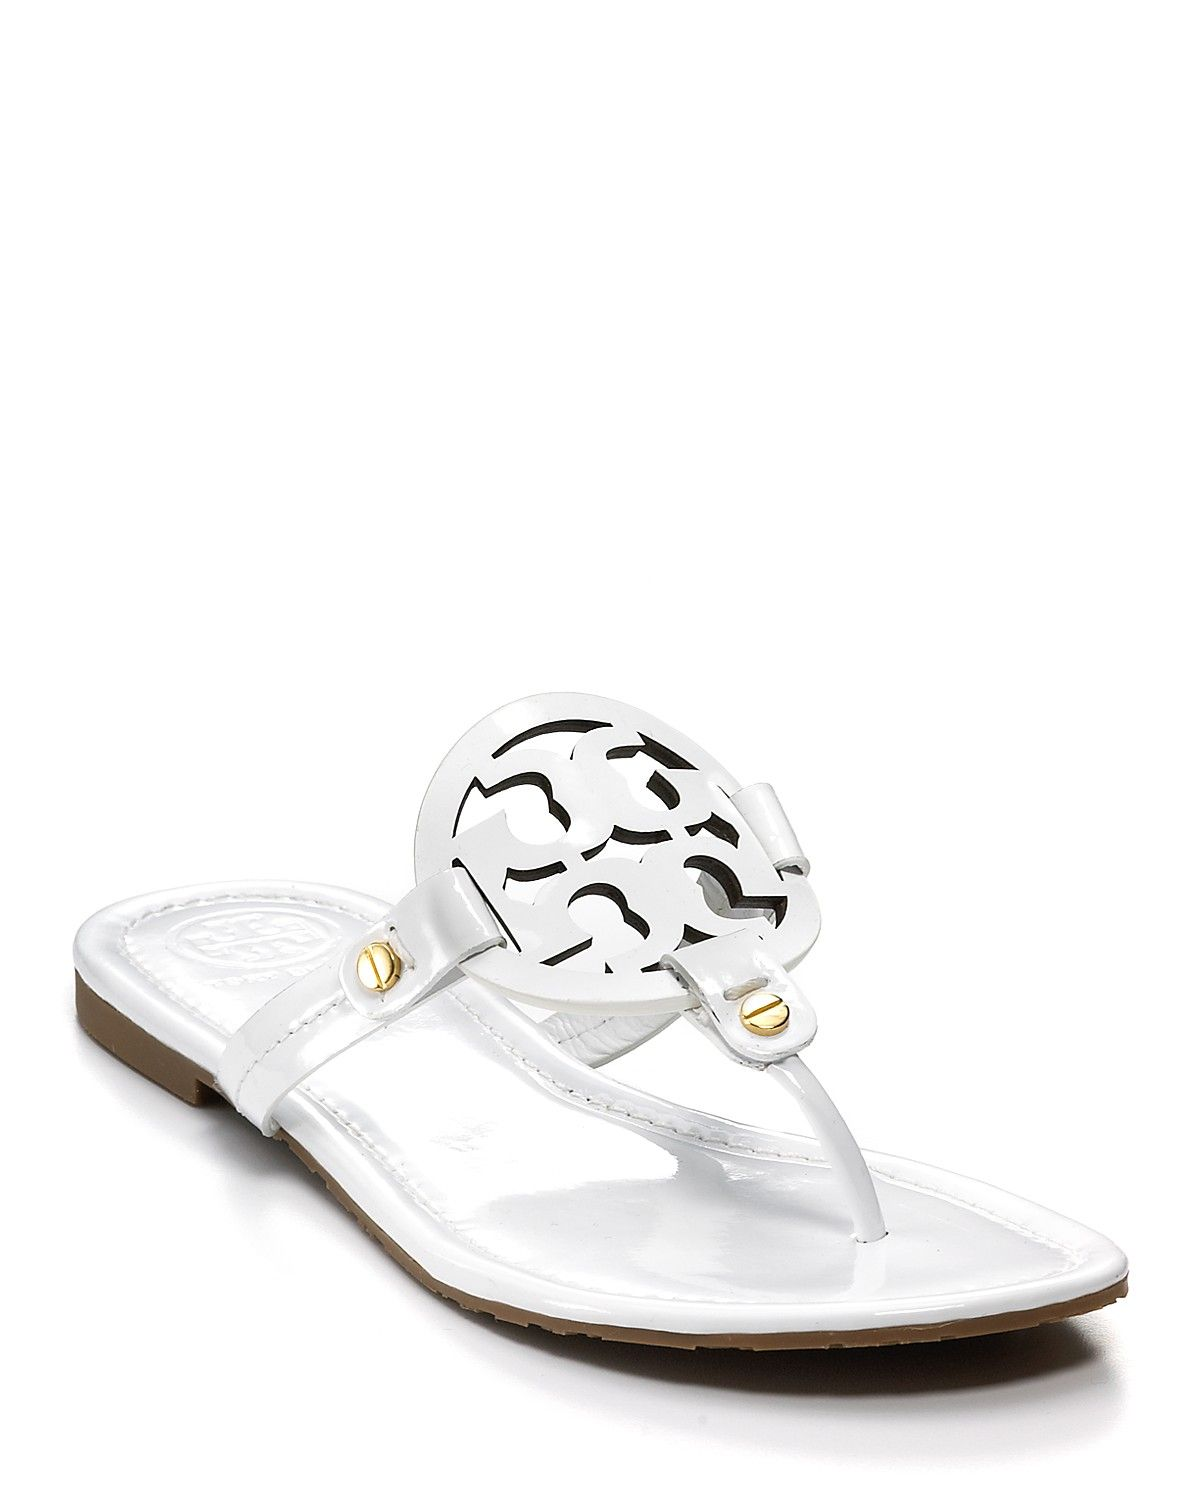 Tory Burch Sandals - Miller Thong | Bloomingdales